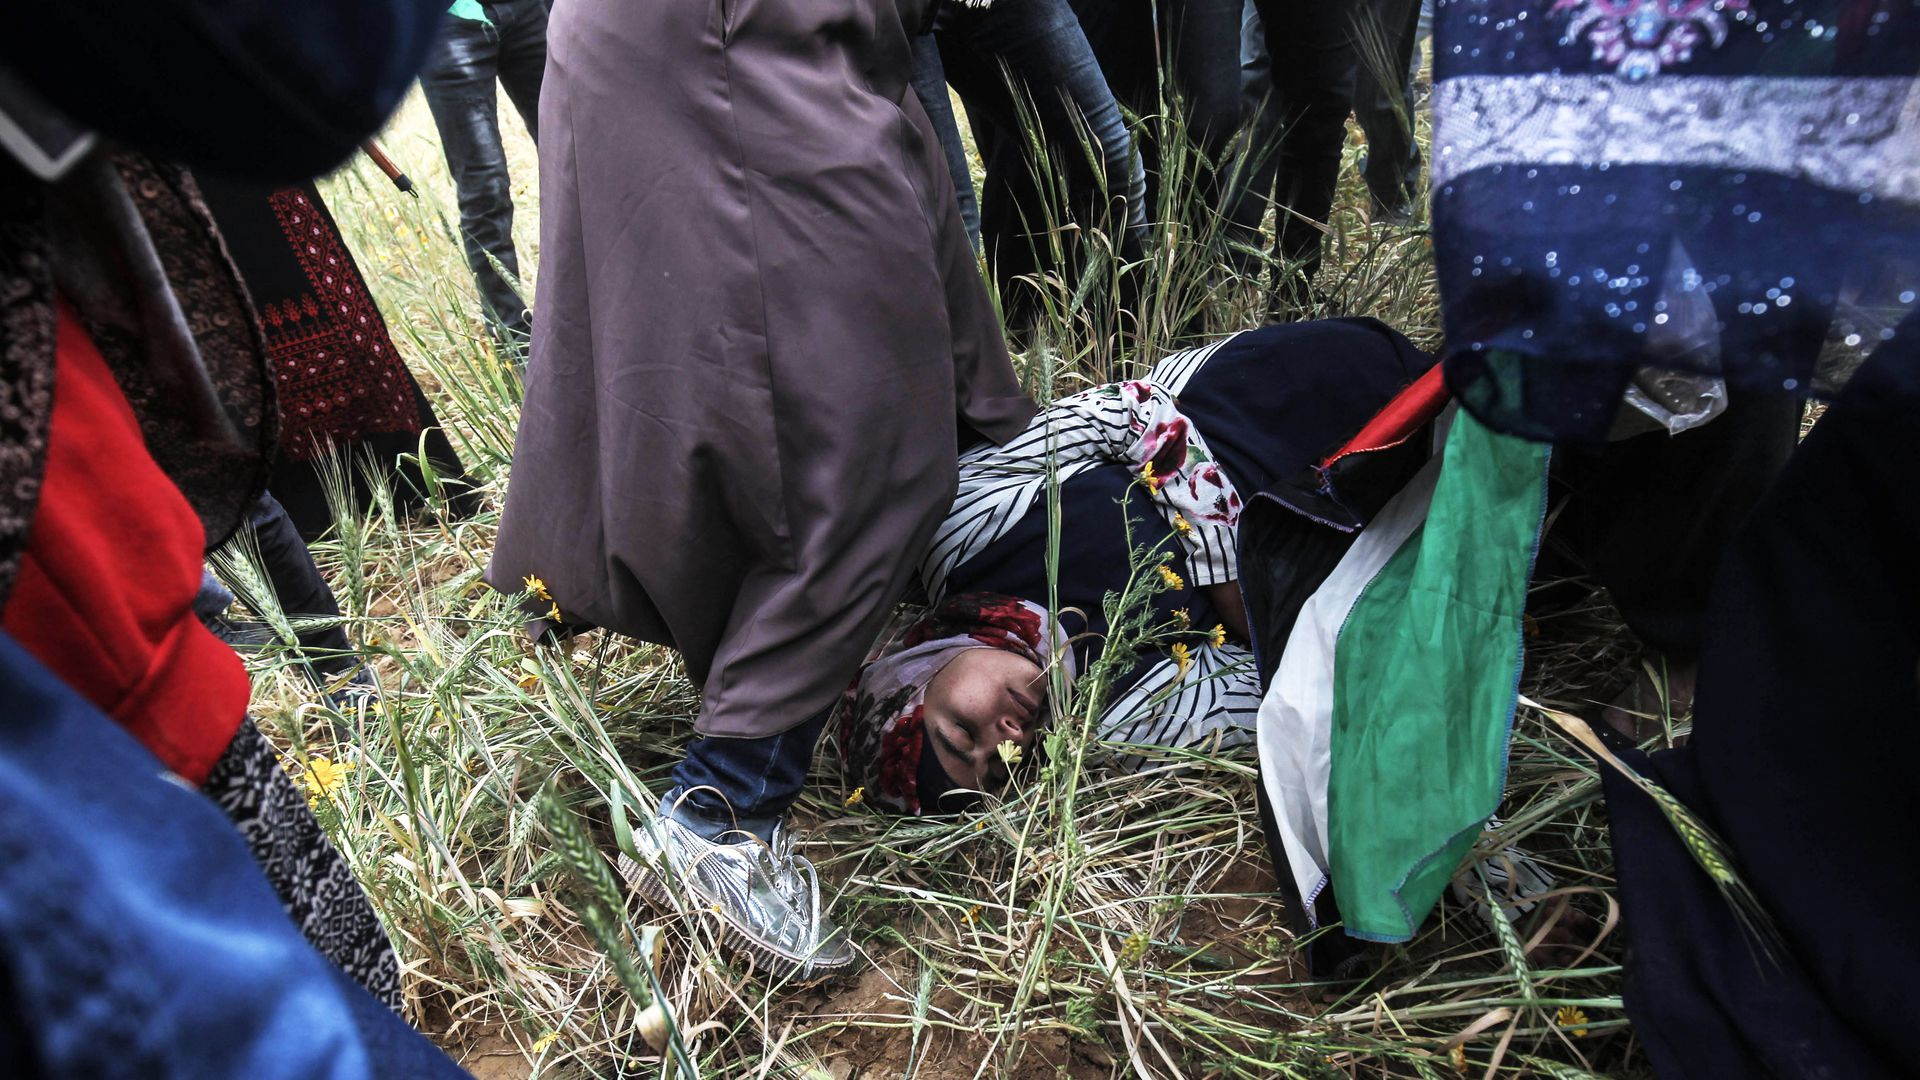 Injured Palestinian woman laying on the ground